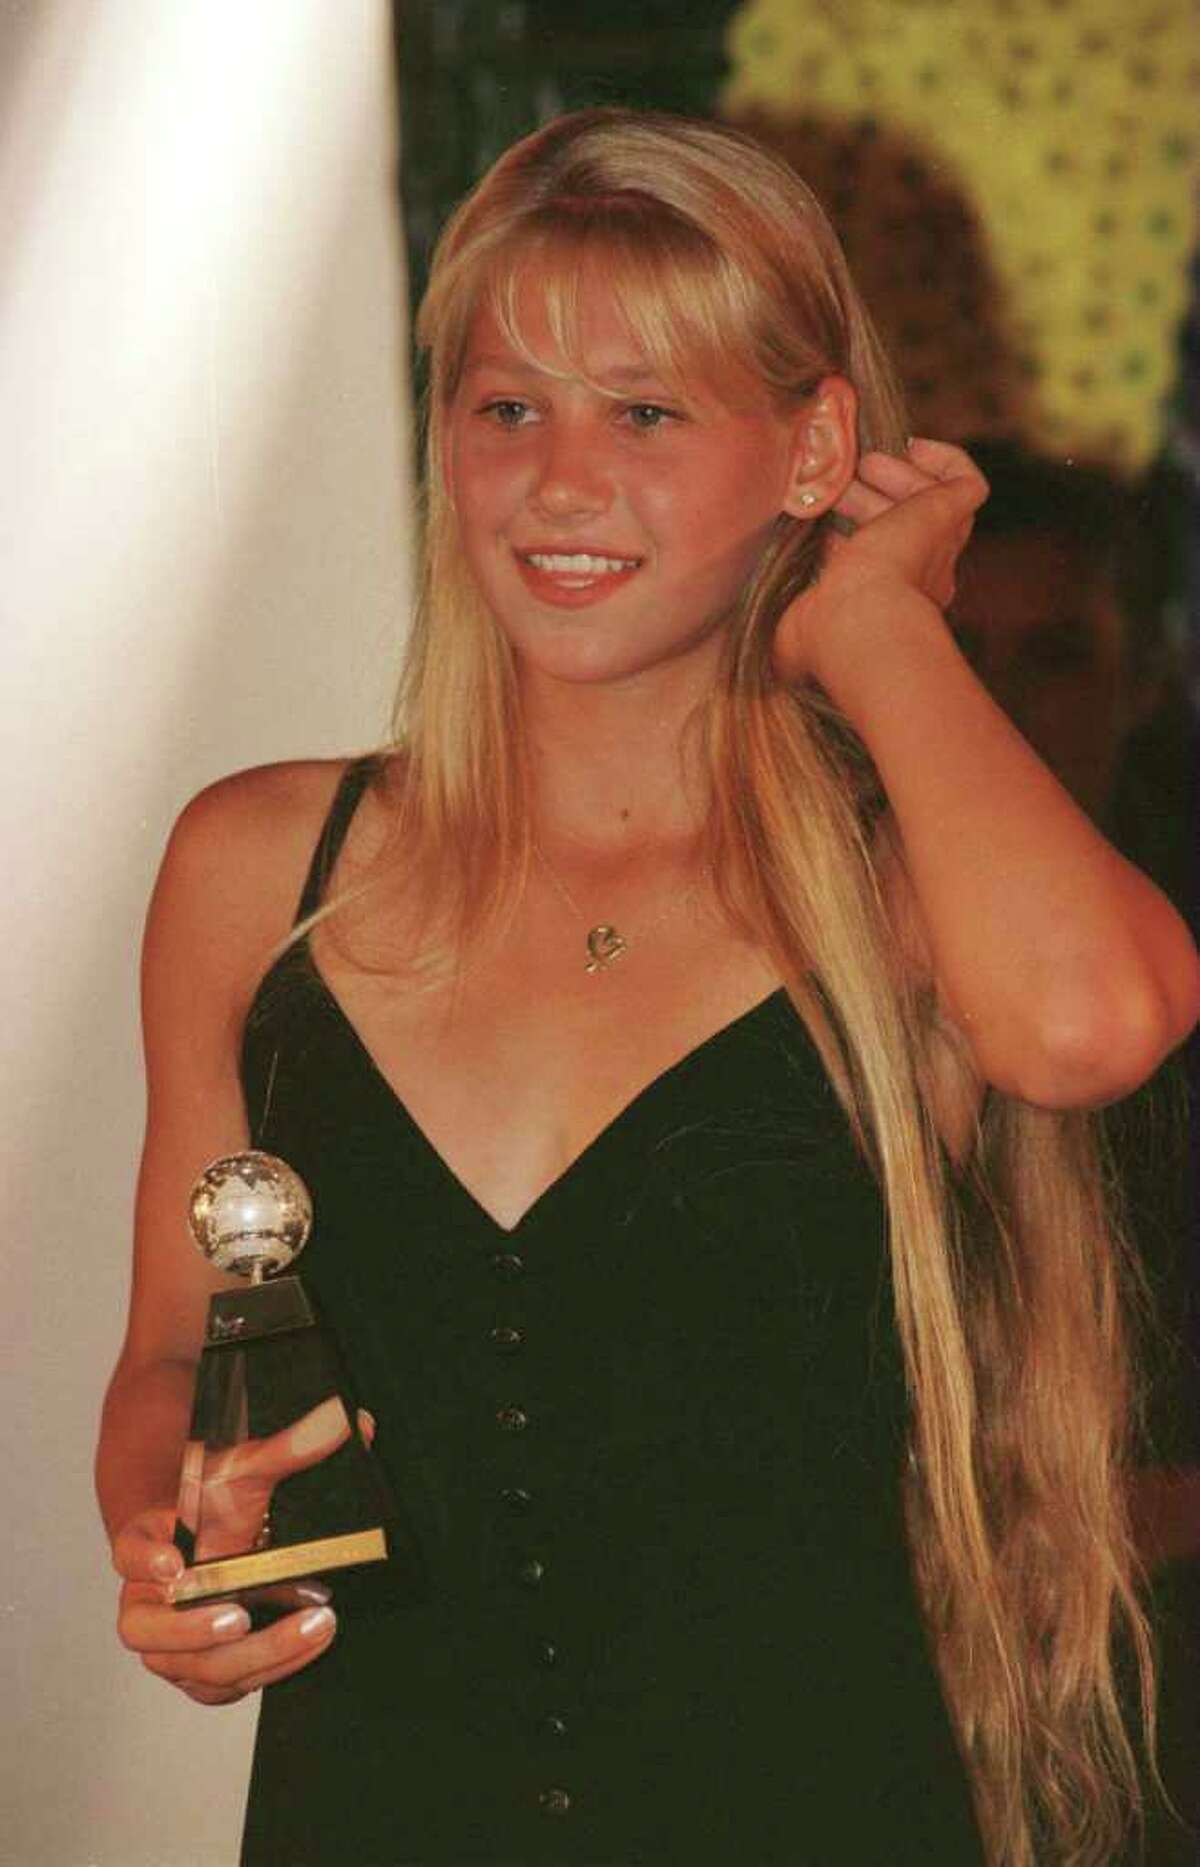 At age 14, Kournikova became the youngest player ever to win a Fed Cup match, then went on to win the European Championships, the Italian Open Junior tournament and the Junior Orange Bowl, earning her the title of ITF Junior World Champion in 1995. Here, she holds that trophy on June 4, 1996, during the ITF World champions dinner at the 1996 French Open at Roland Garros in Paris, France. She turned pro in 1995 and, in 1996, won of the Sanex WTA Tour Most Impressive Newcomer Award.